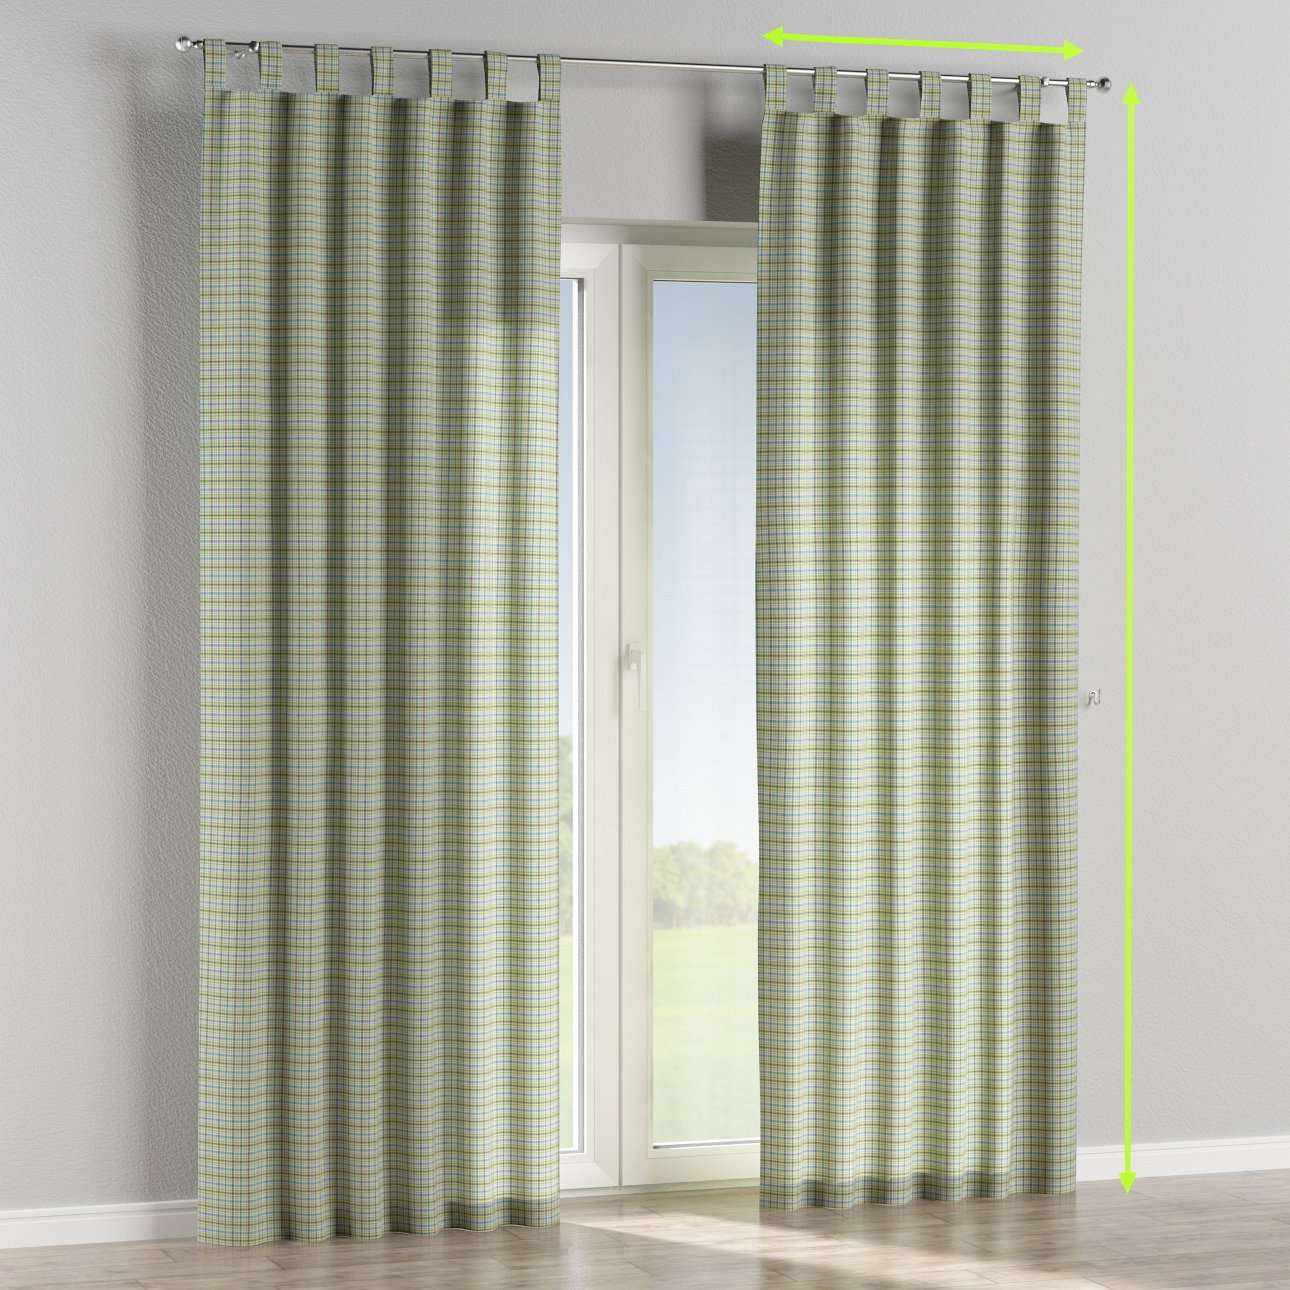 Tab top curtains in collection Bristol, fabric: 126-69